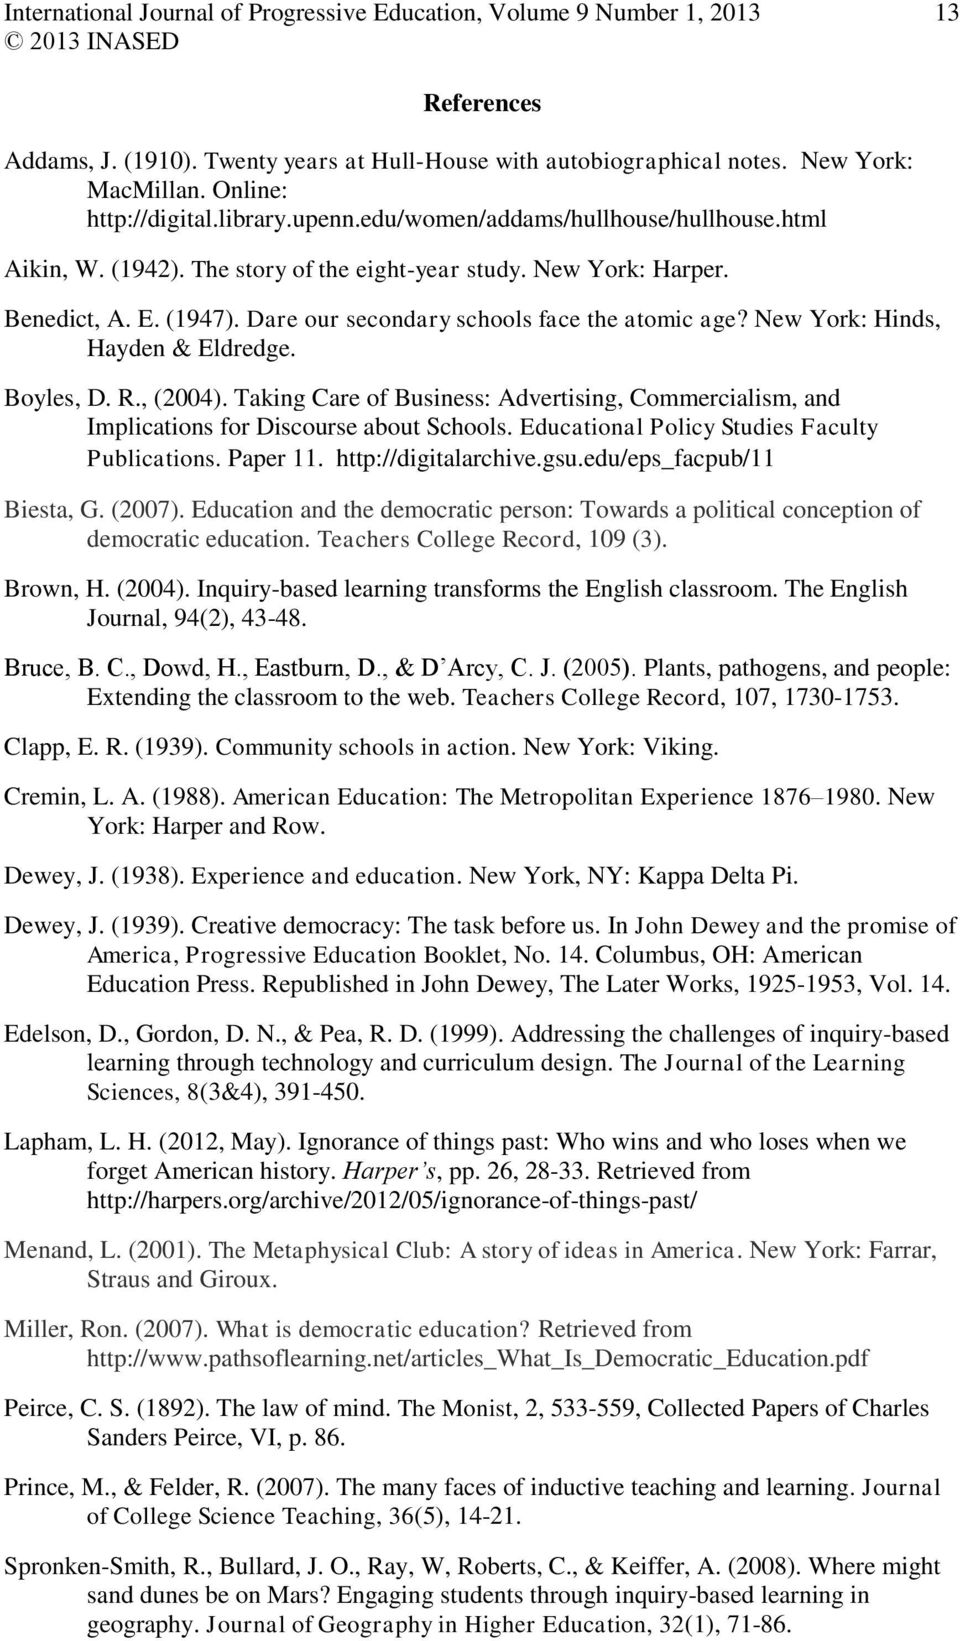 Taking Care of Business: Advertising, Commercialism, and Implications for Discourse about Schools. Educational Policy Studies Faculty Publications. Paper 11. http://digitalarchive.gsu.